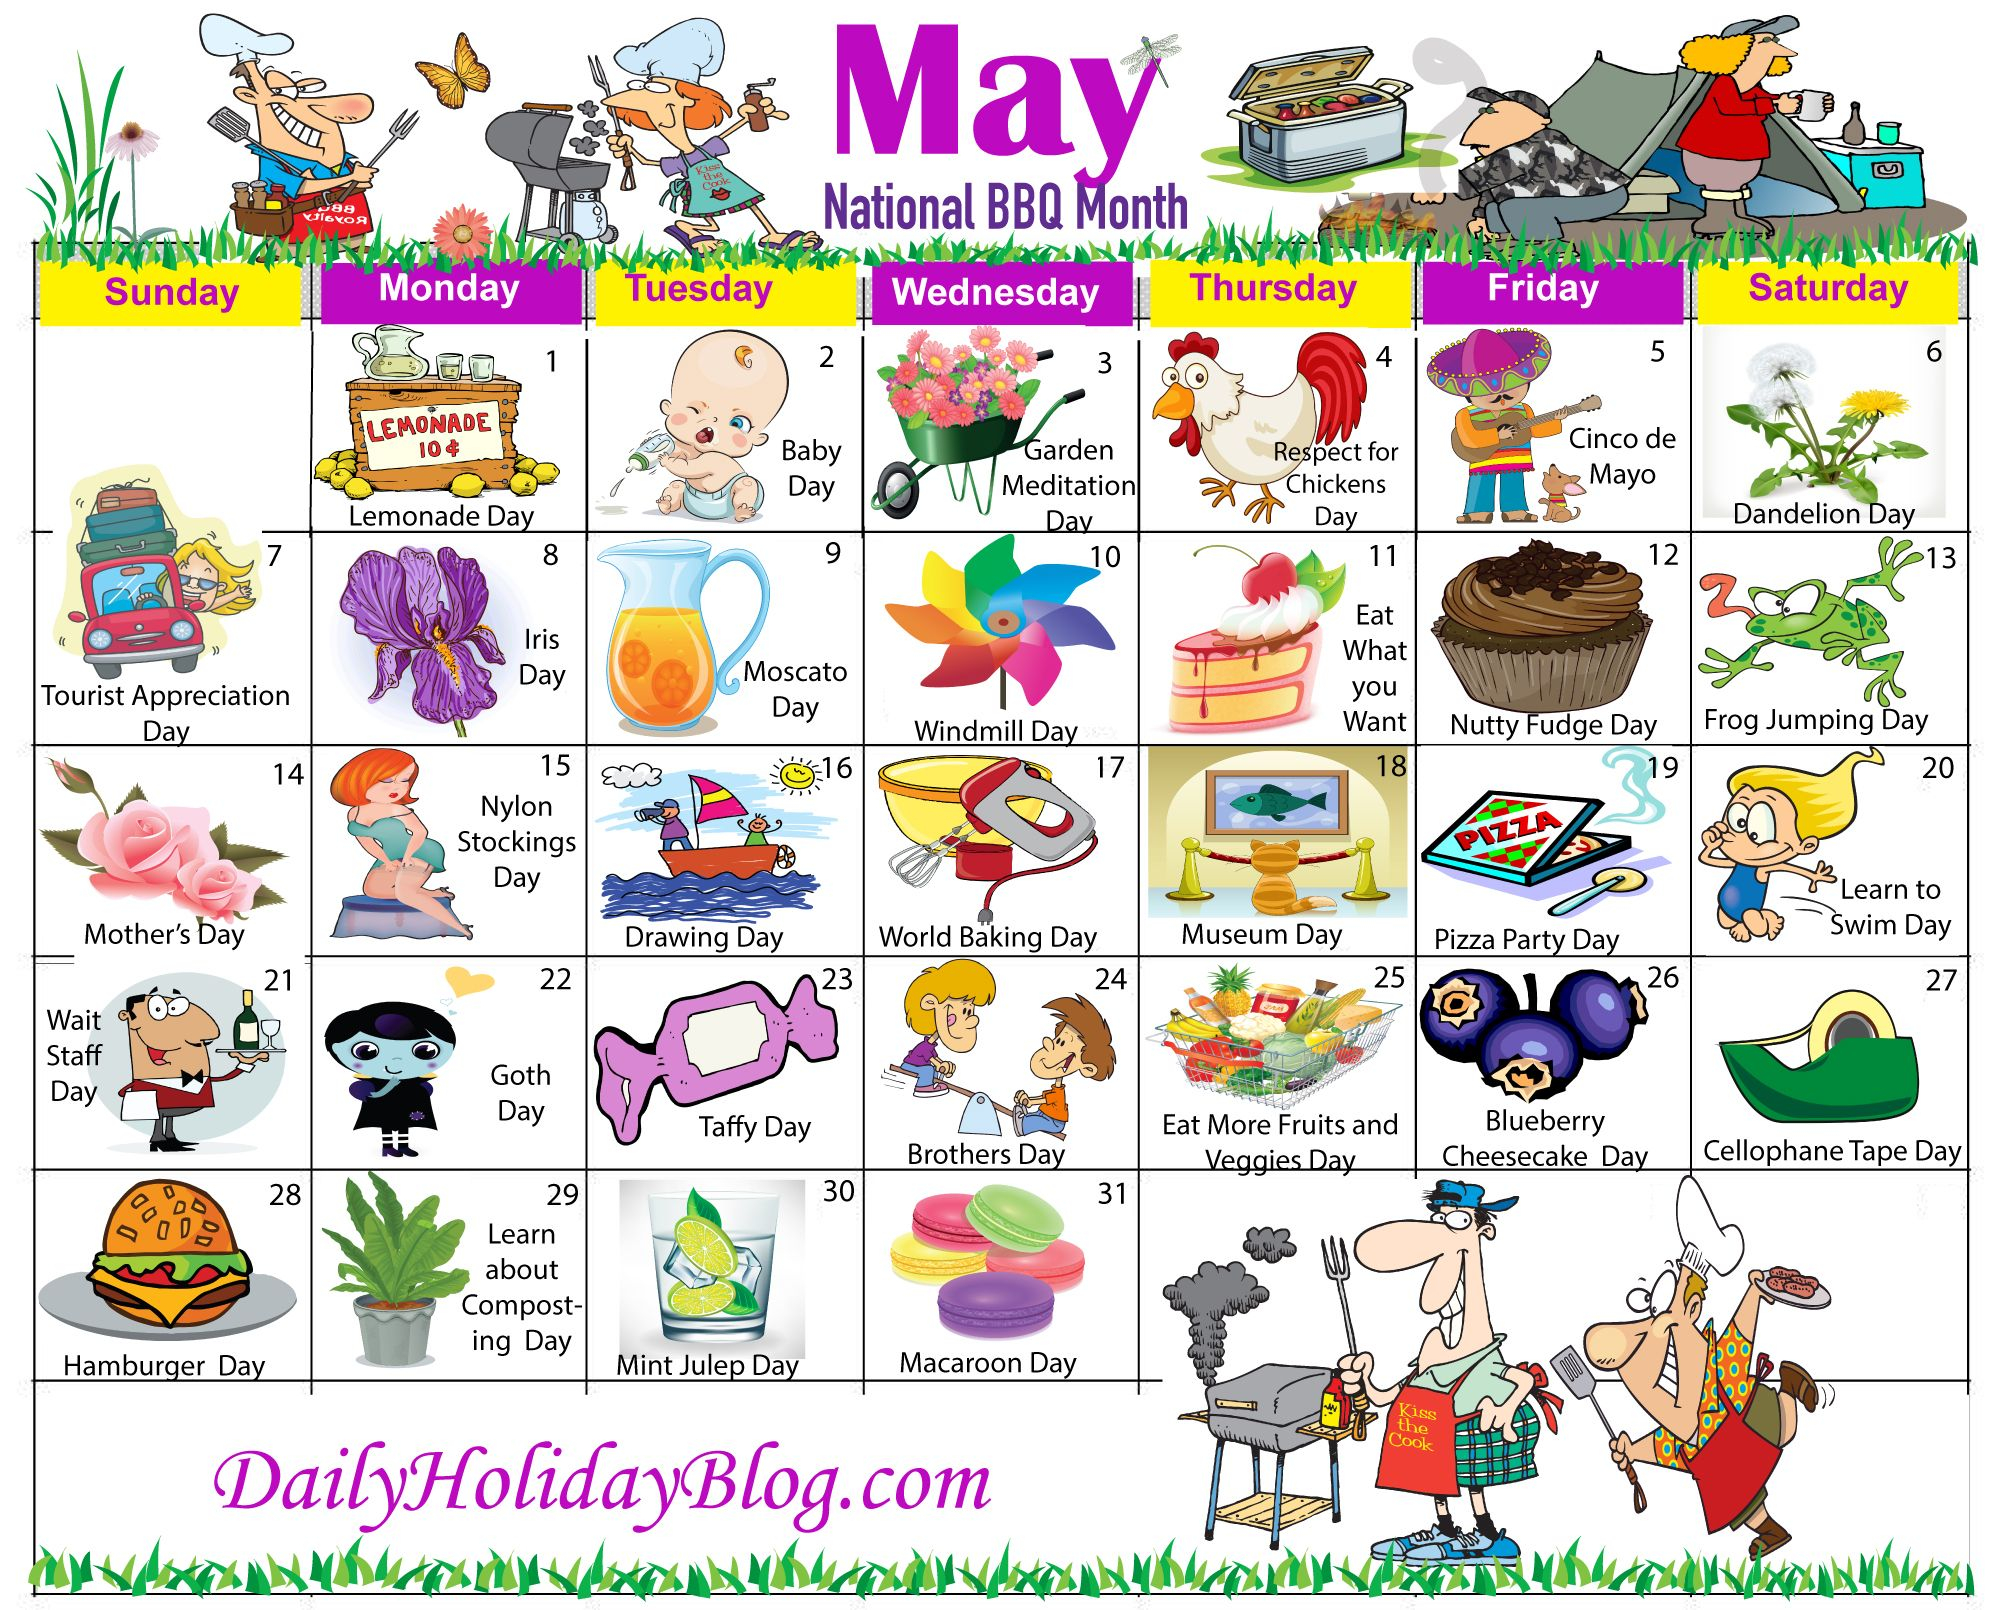 For Subscribers! (With Images) | National Holiday Calendar Intended For Everyday Is A Holiday Calendar